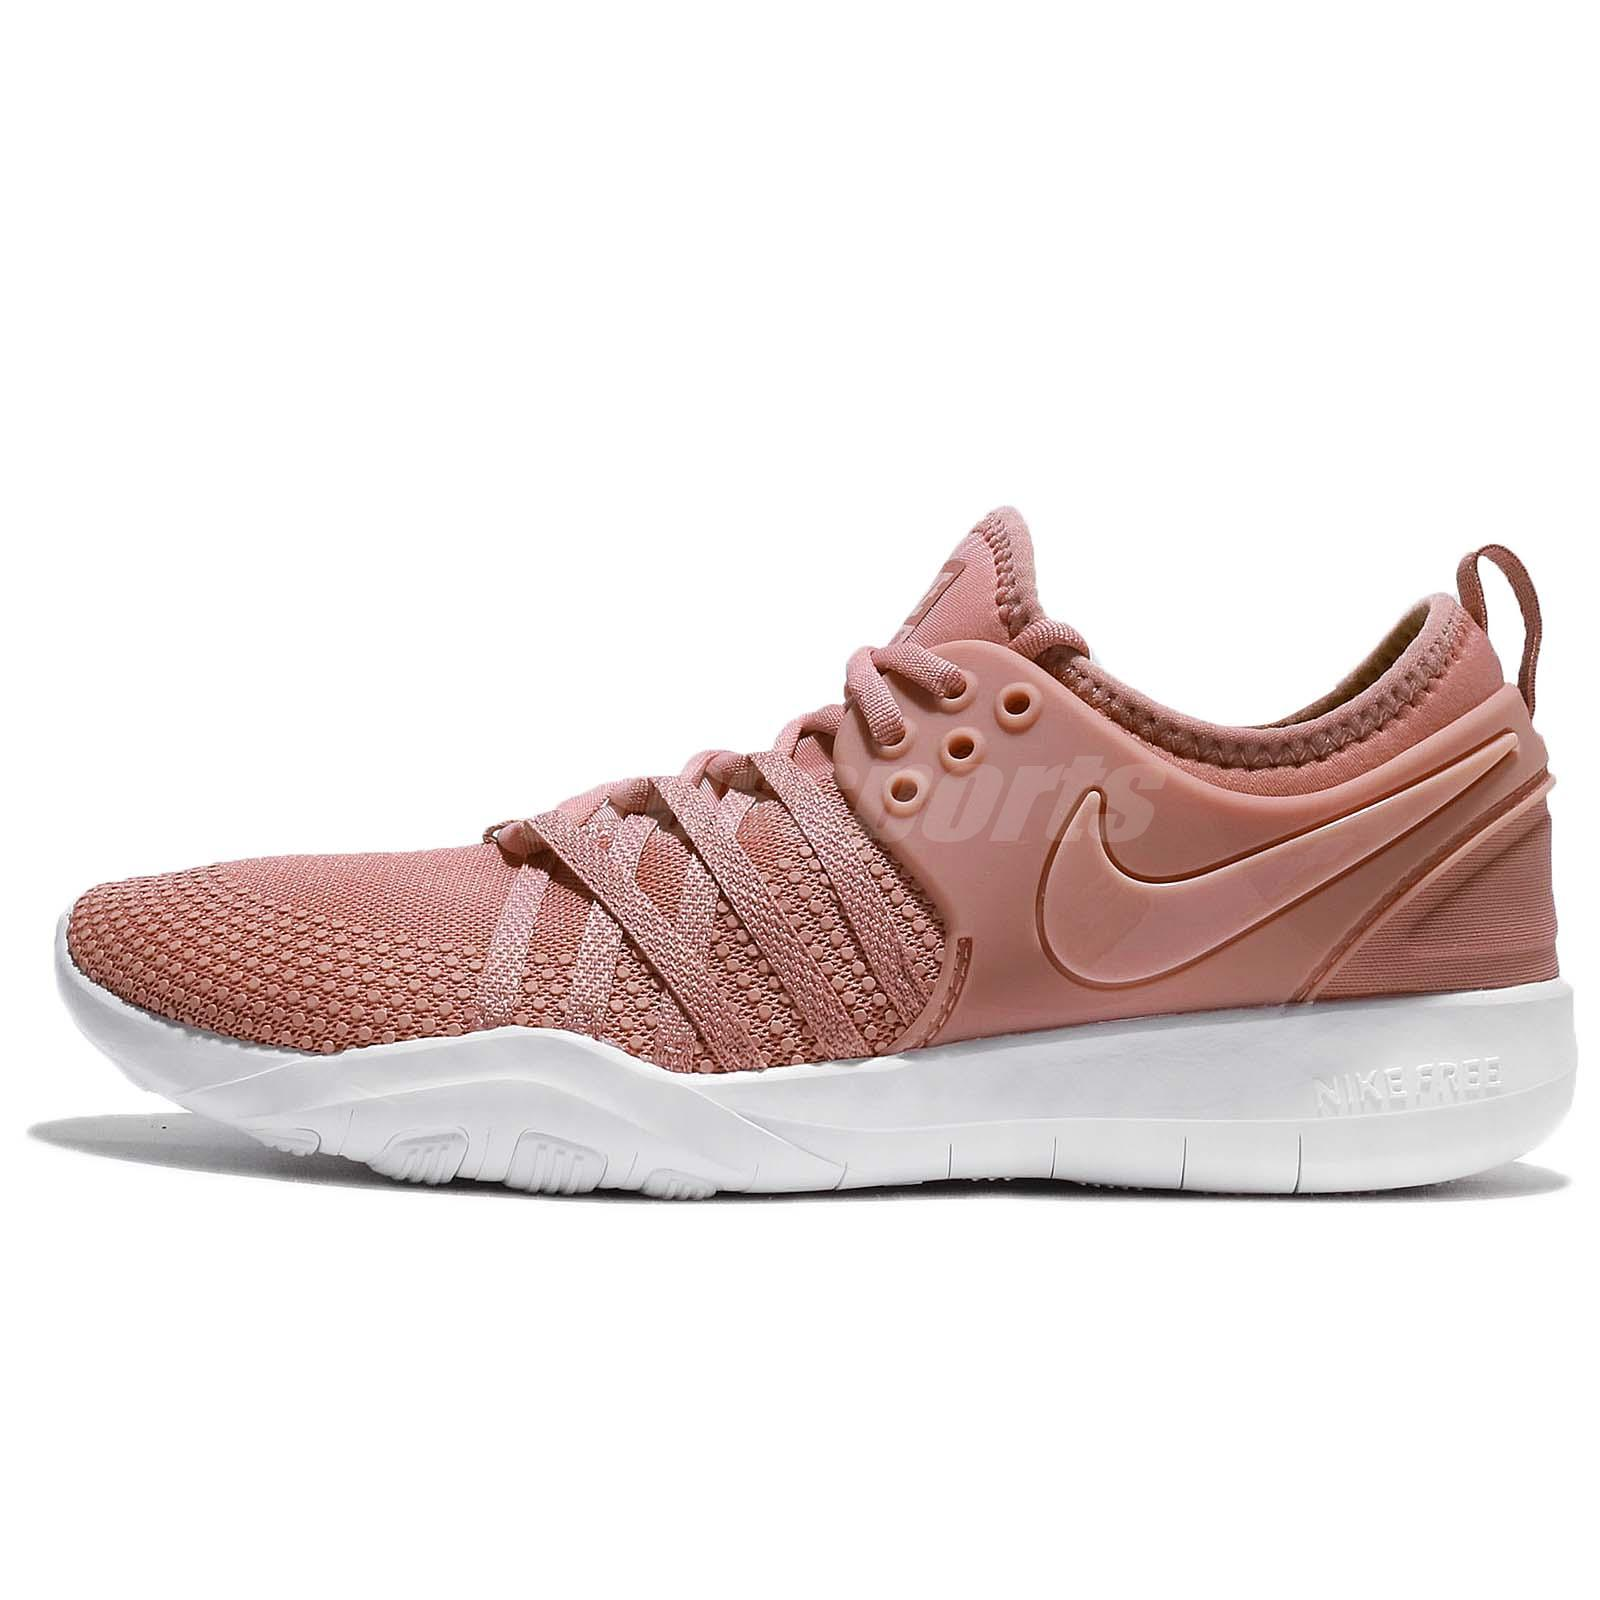 45f2659082d Details about Wmns Nike Free TR 7 VII Rust Pink White Women Training  Trainers 904651-604